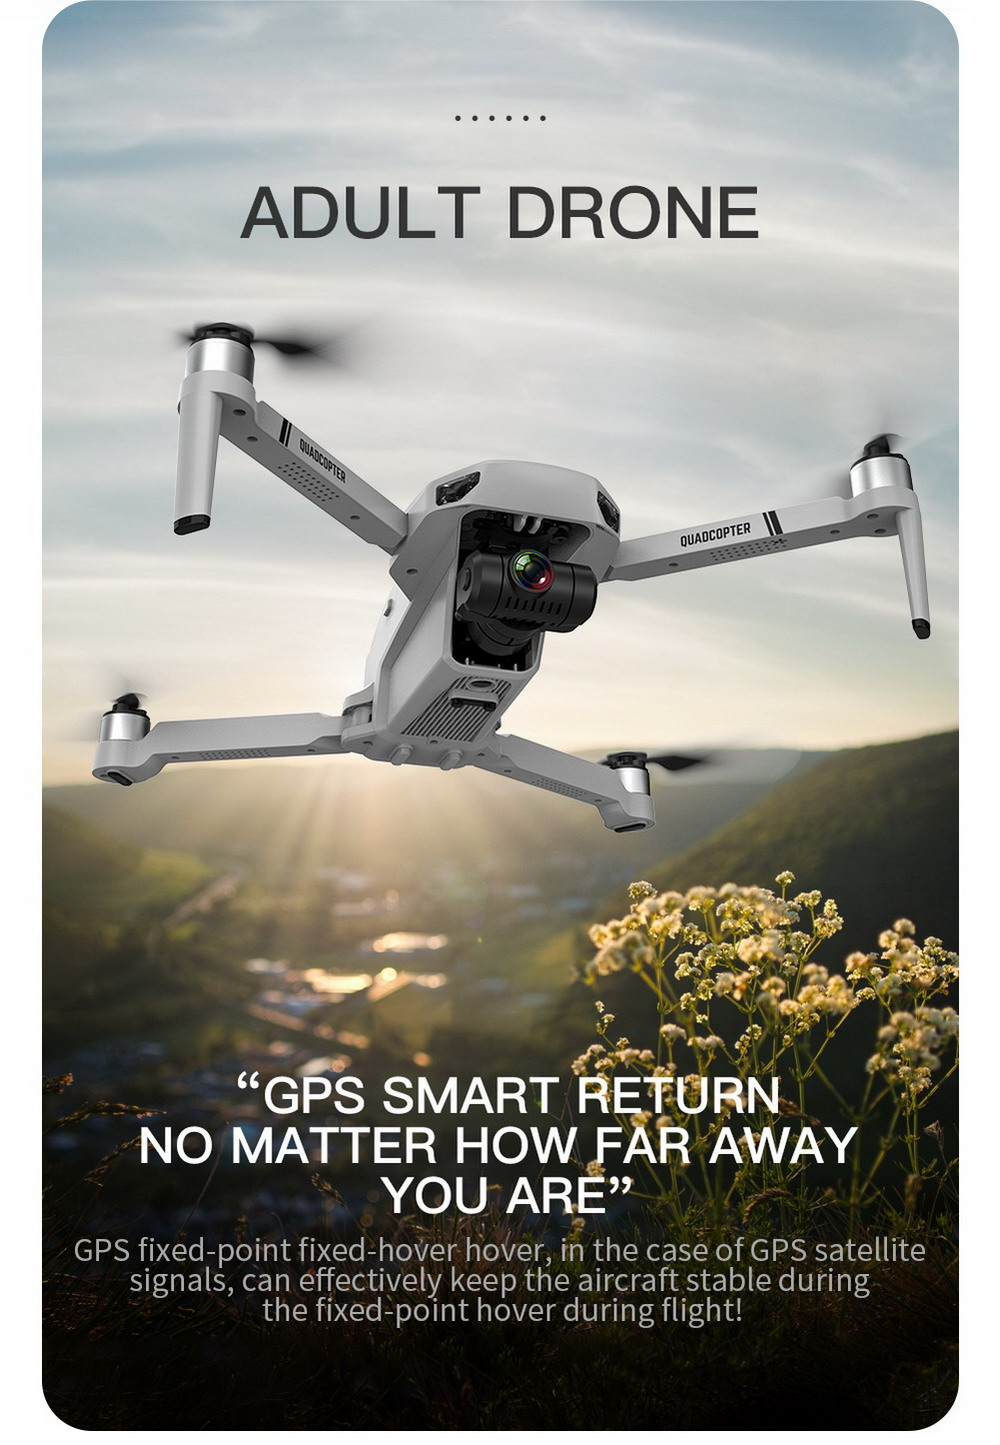 KF102 RC Quadcopter Drone Toy - Gray